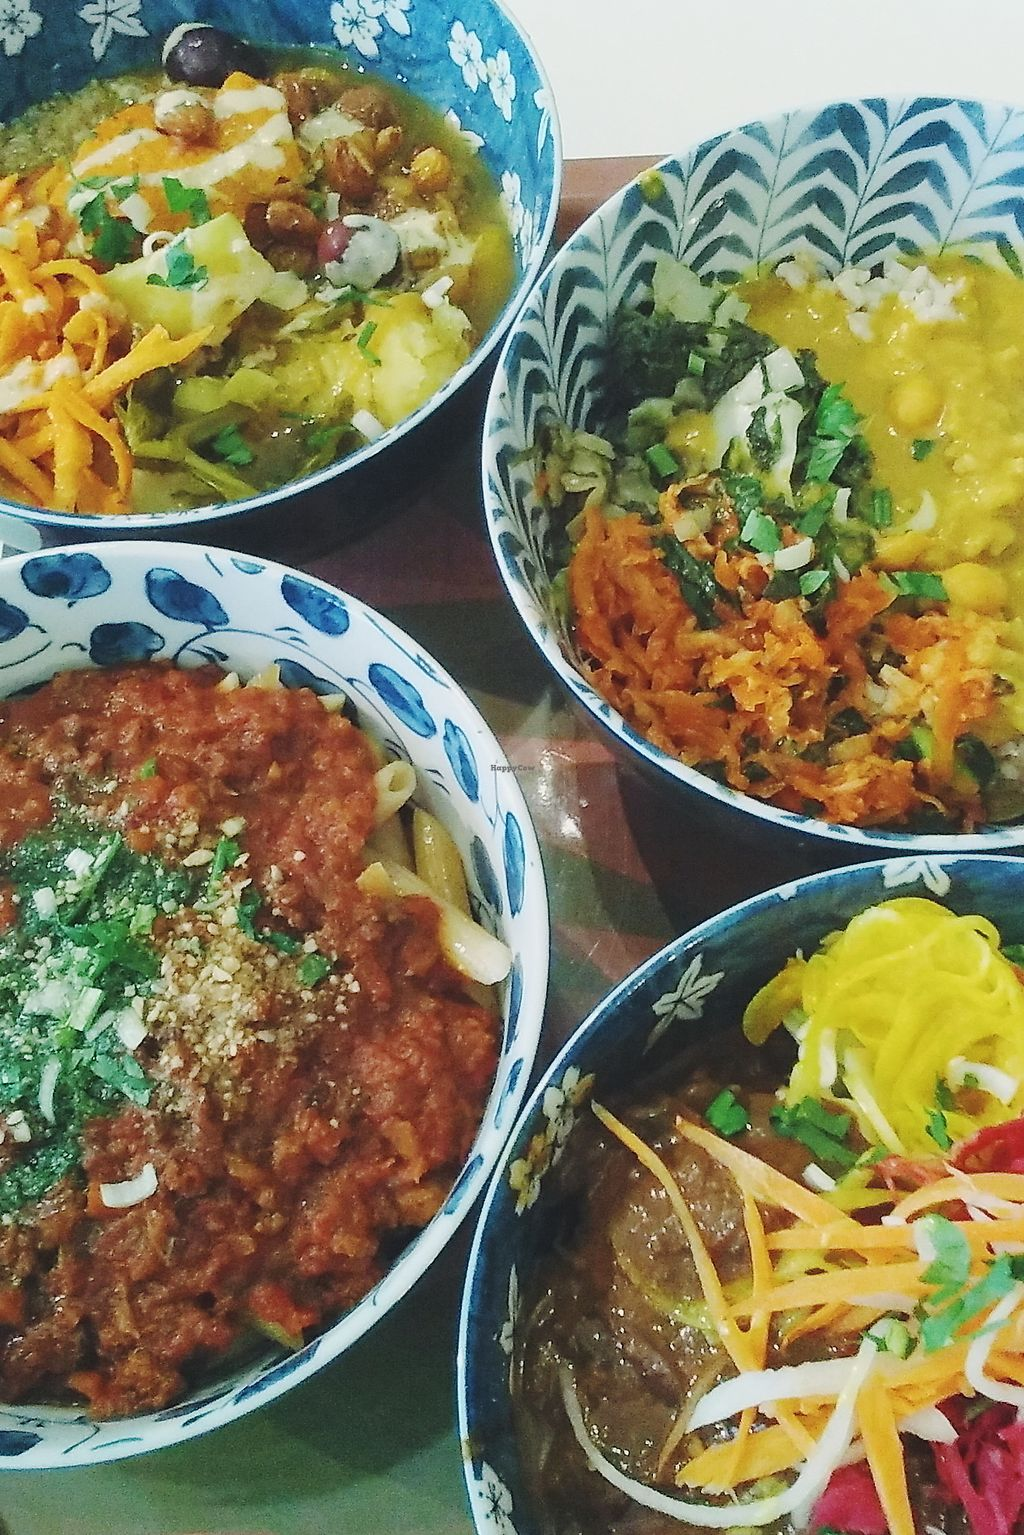 """Photo of Le Botaniste  by <a href=""""/members/profile/unmond"""">unmond</a> <br/>clockwise from the top: vegetable tajine, tibetan mama, jeff, pasta al mafiosi <br/> August 19, 2017  - <a href='/contact/abuse/image/59241/294176'>Report</a>"""